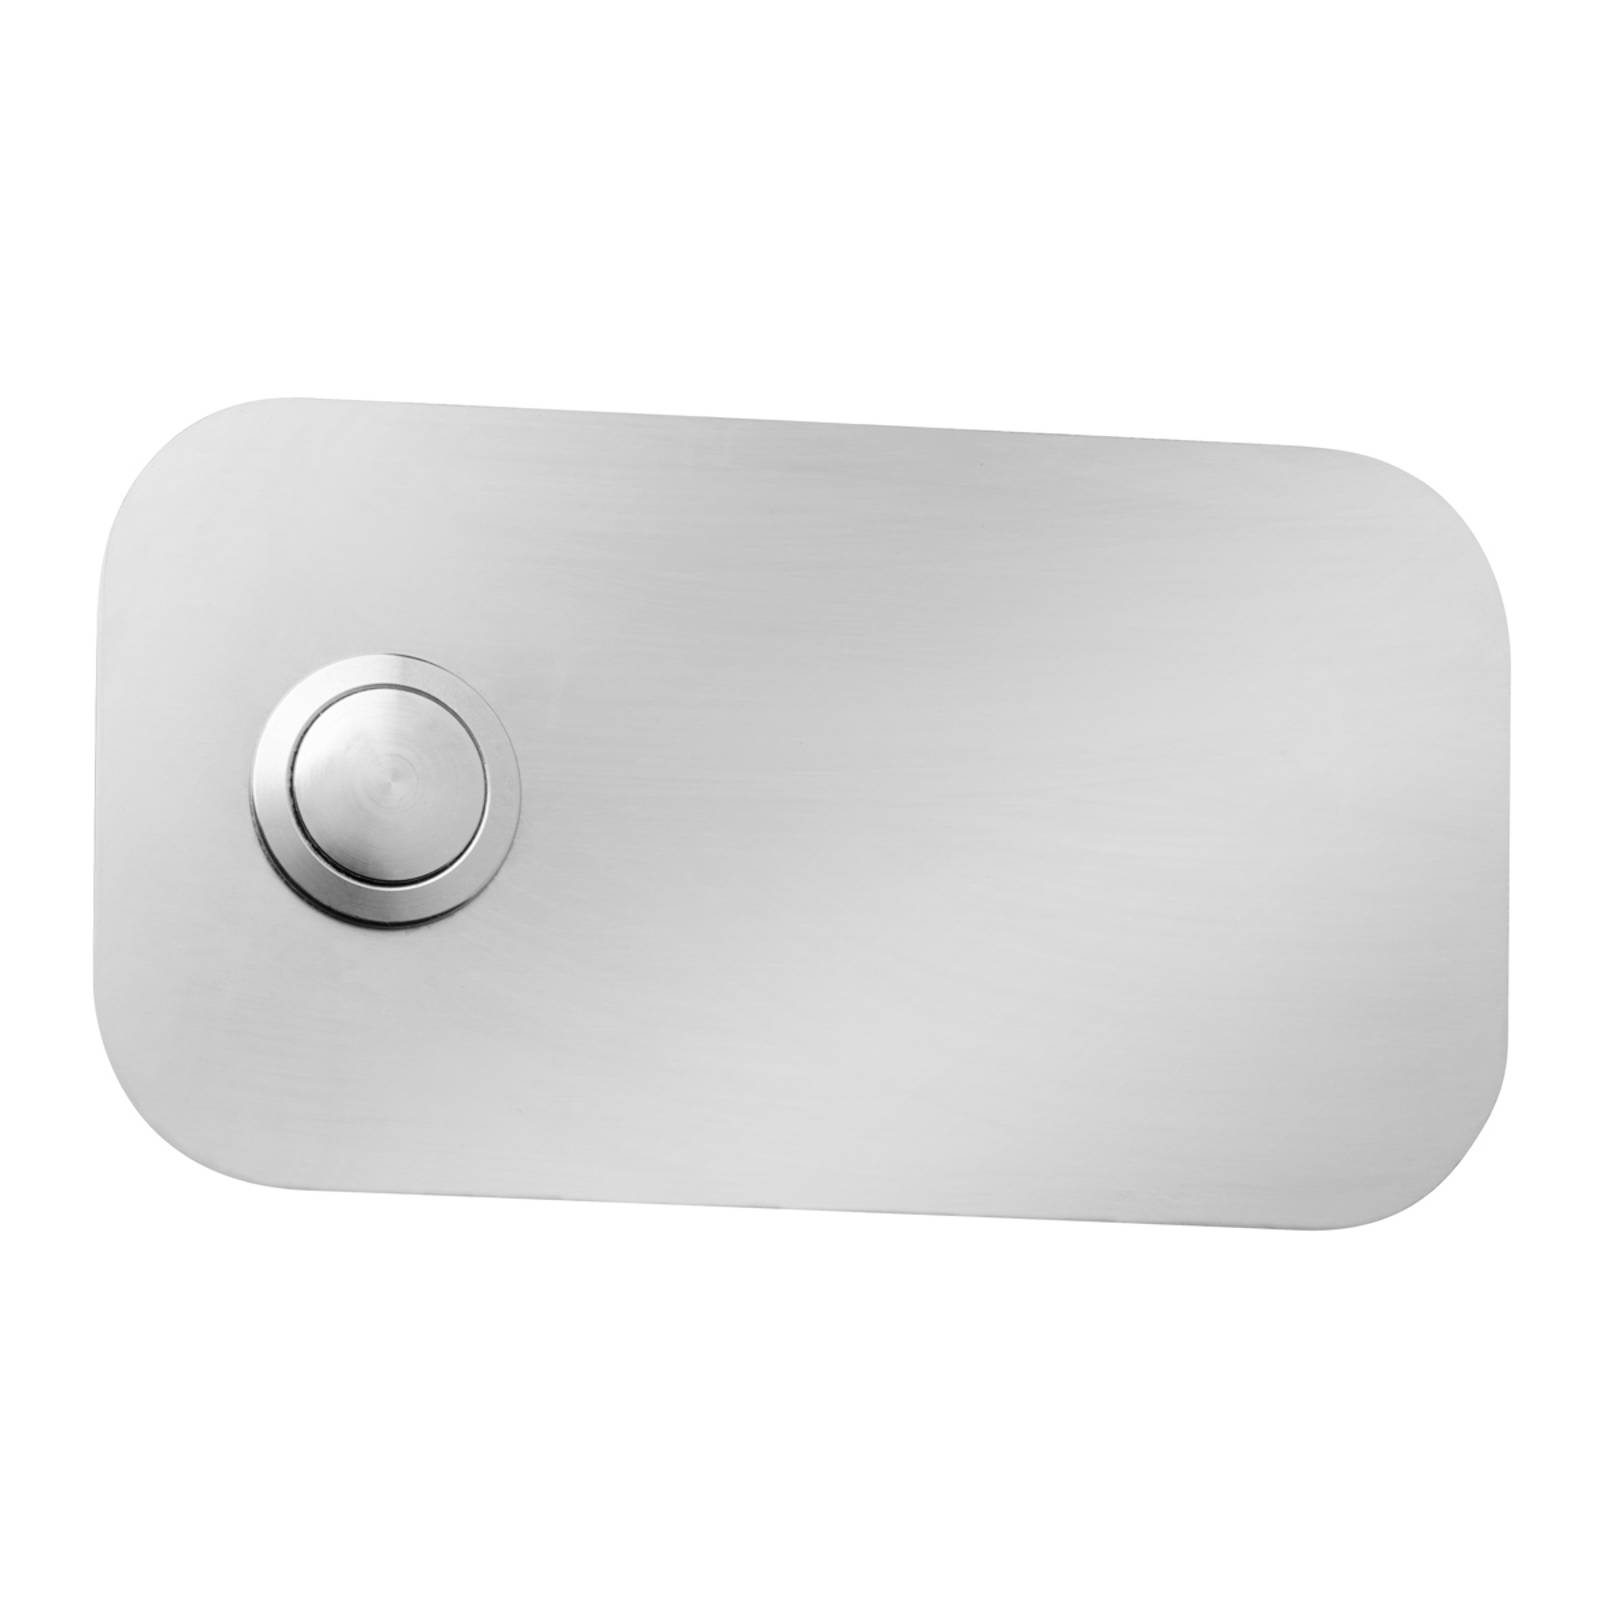 Rectangular Stainless Steel Doorbell Coverplate from CMD